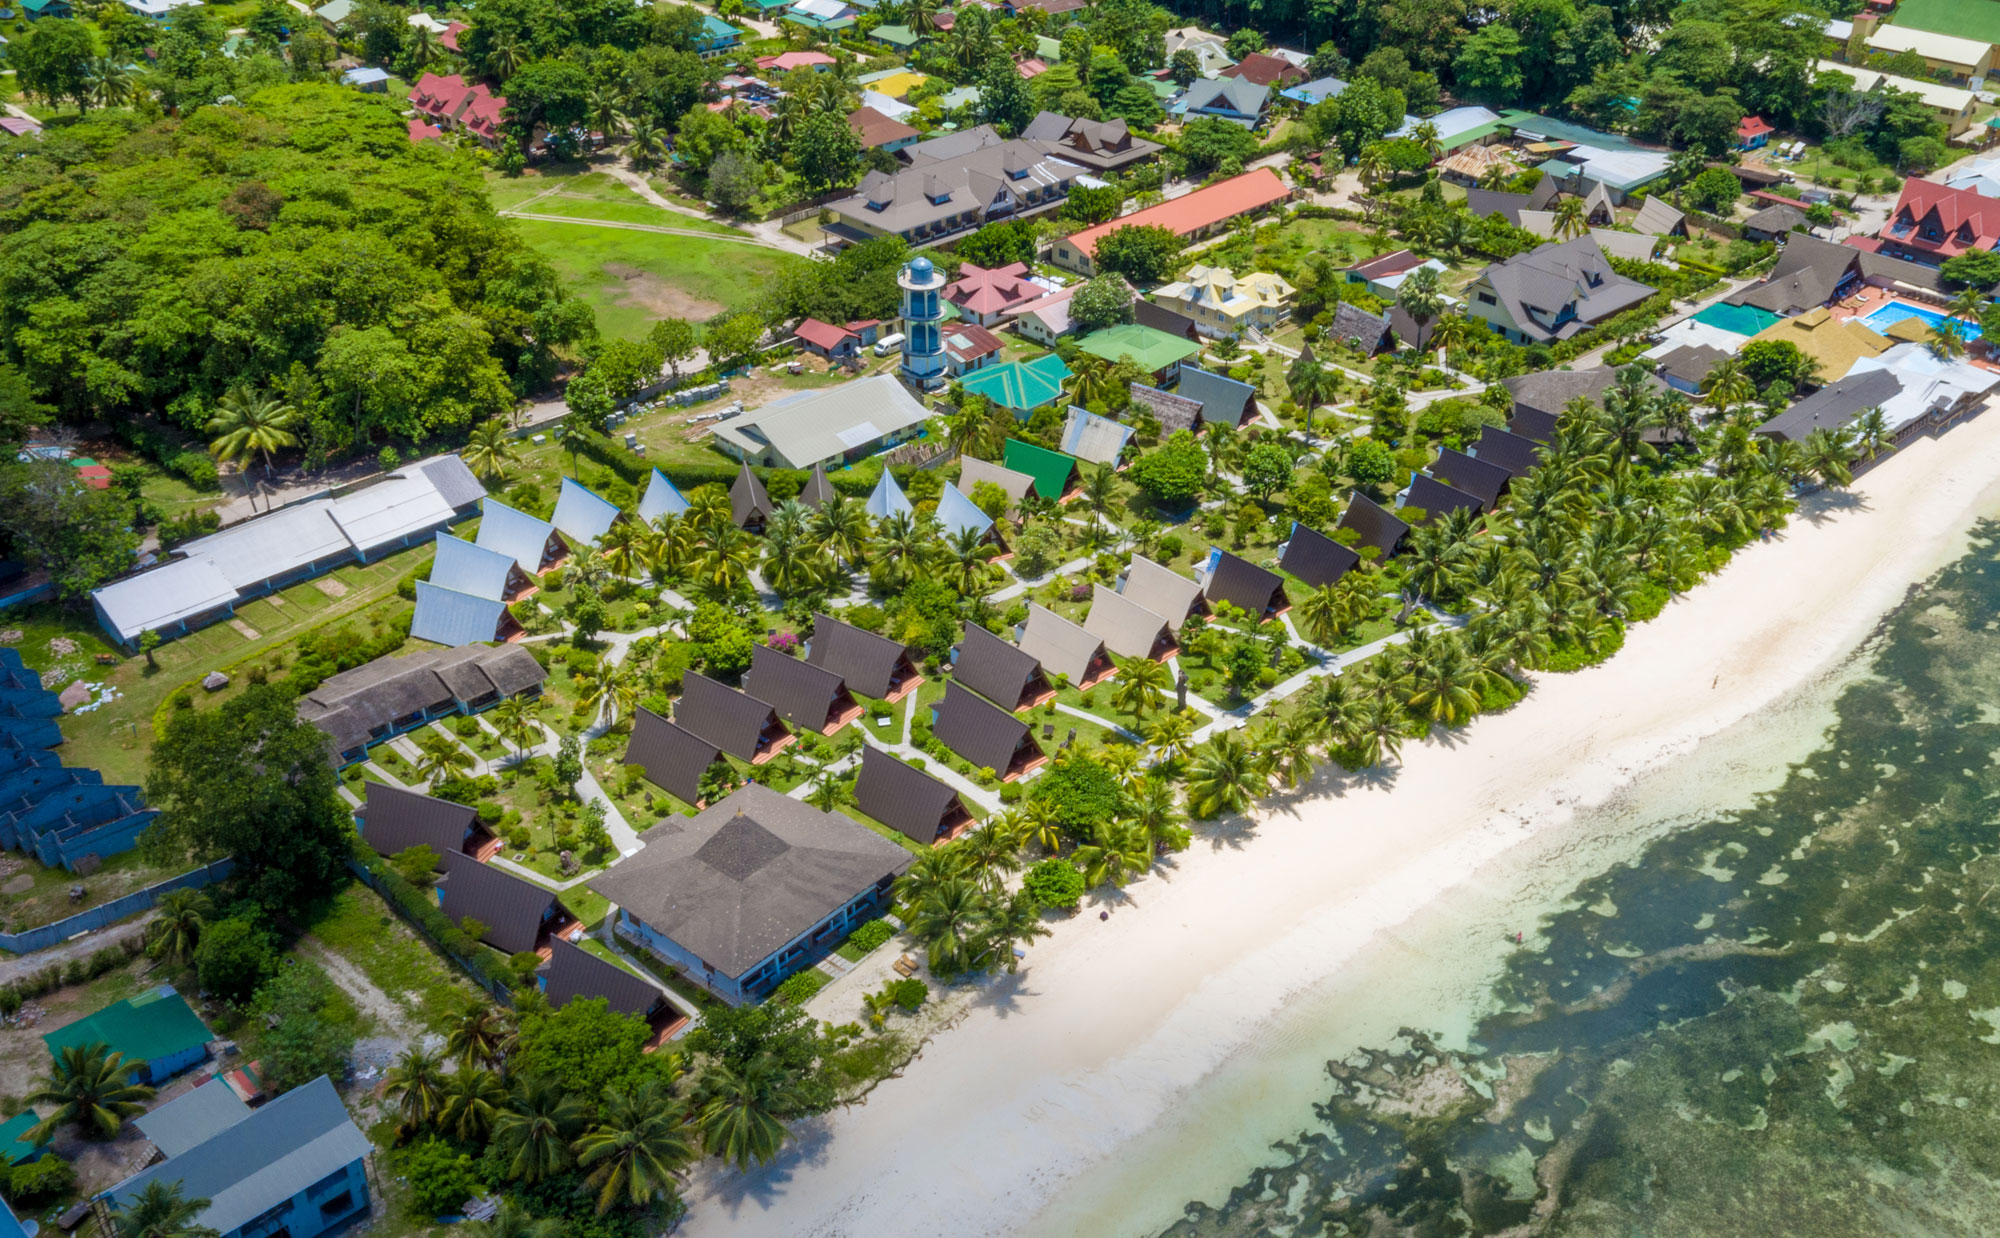 TRAUM DESTINATION & IDYLLIC <br>URLAUB IN LA DIGUE